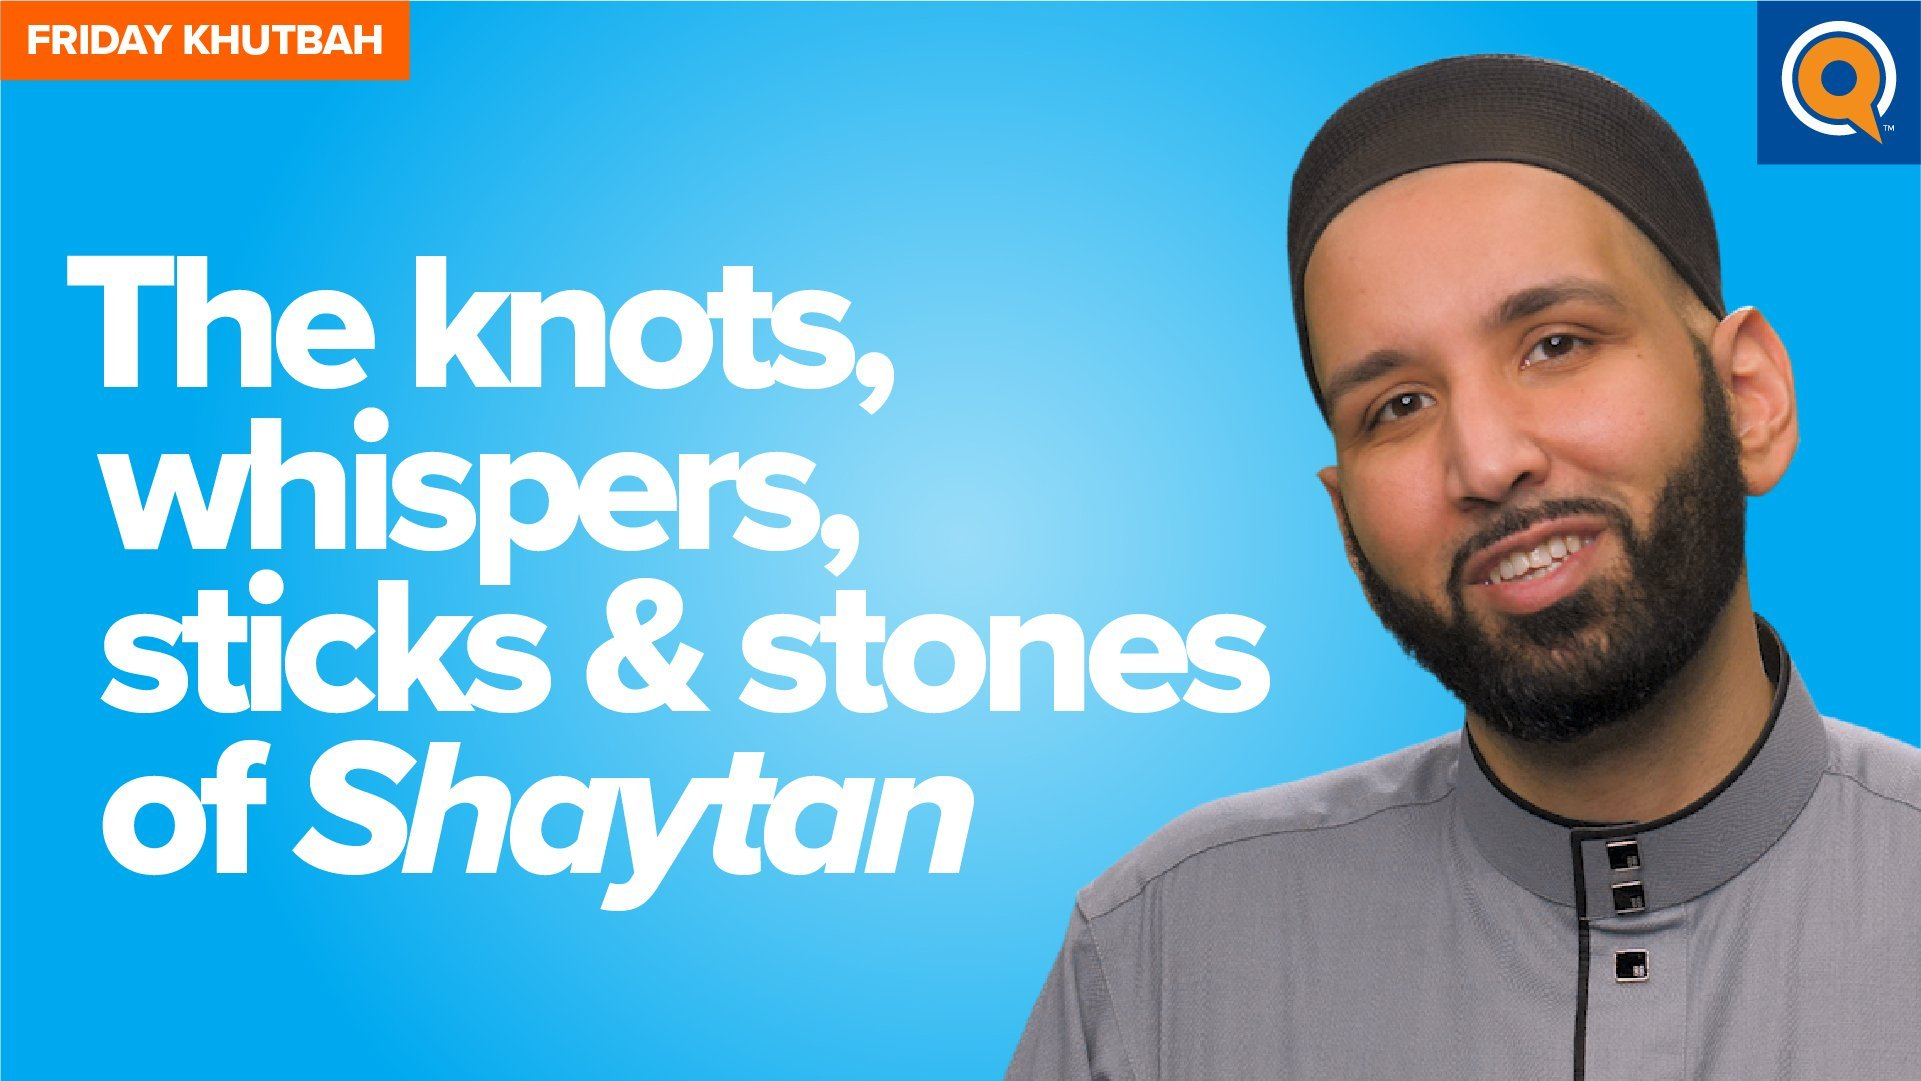 The Knots, Whispers, Sticks & Stones of Shaytan | Khutbah